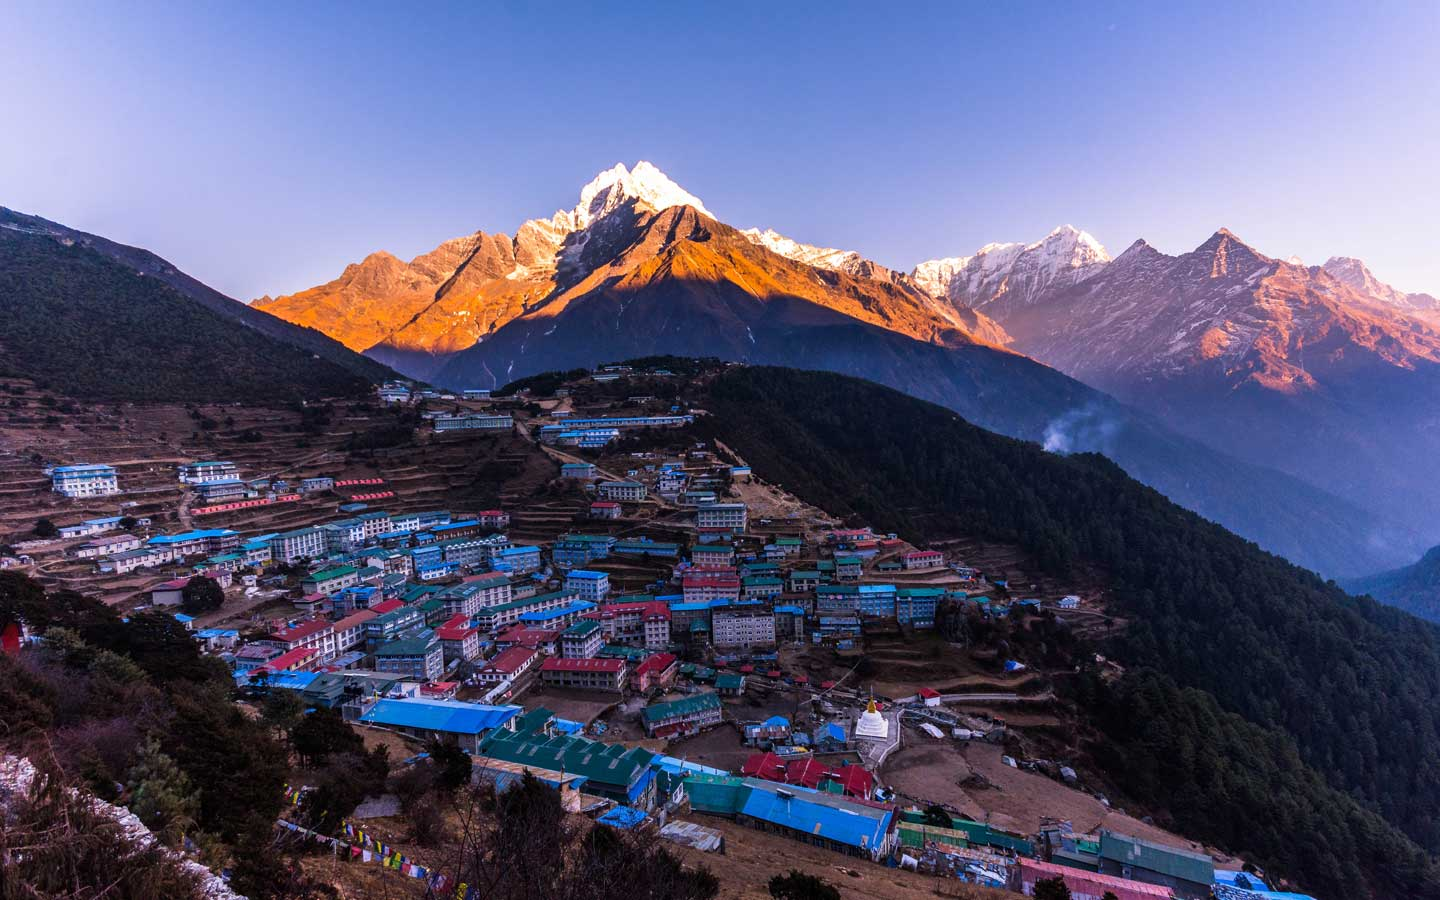 Namche Bazar on the way to everest base camp